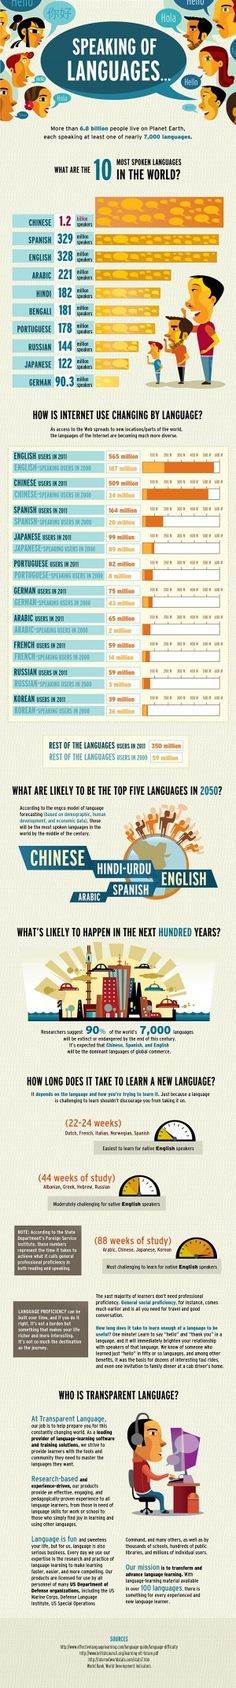 Top 10 - Most spoken Languages in the World and how is internet use changing by Language